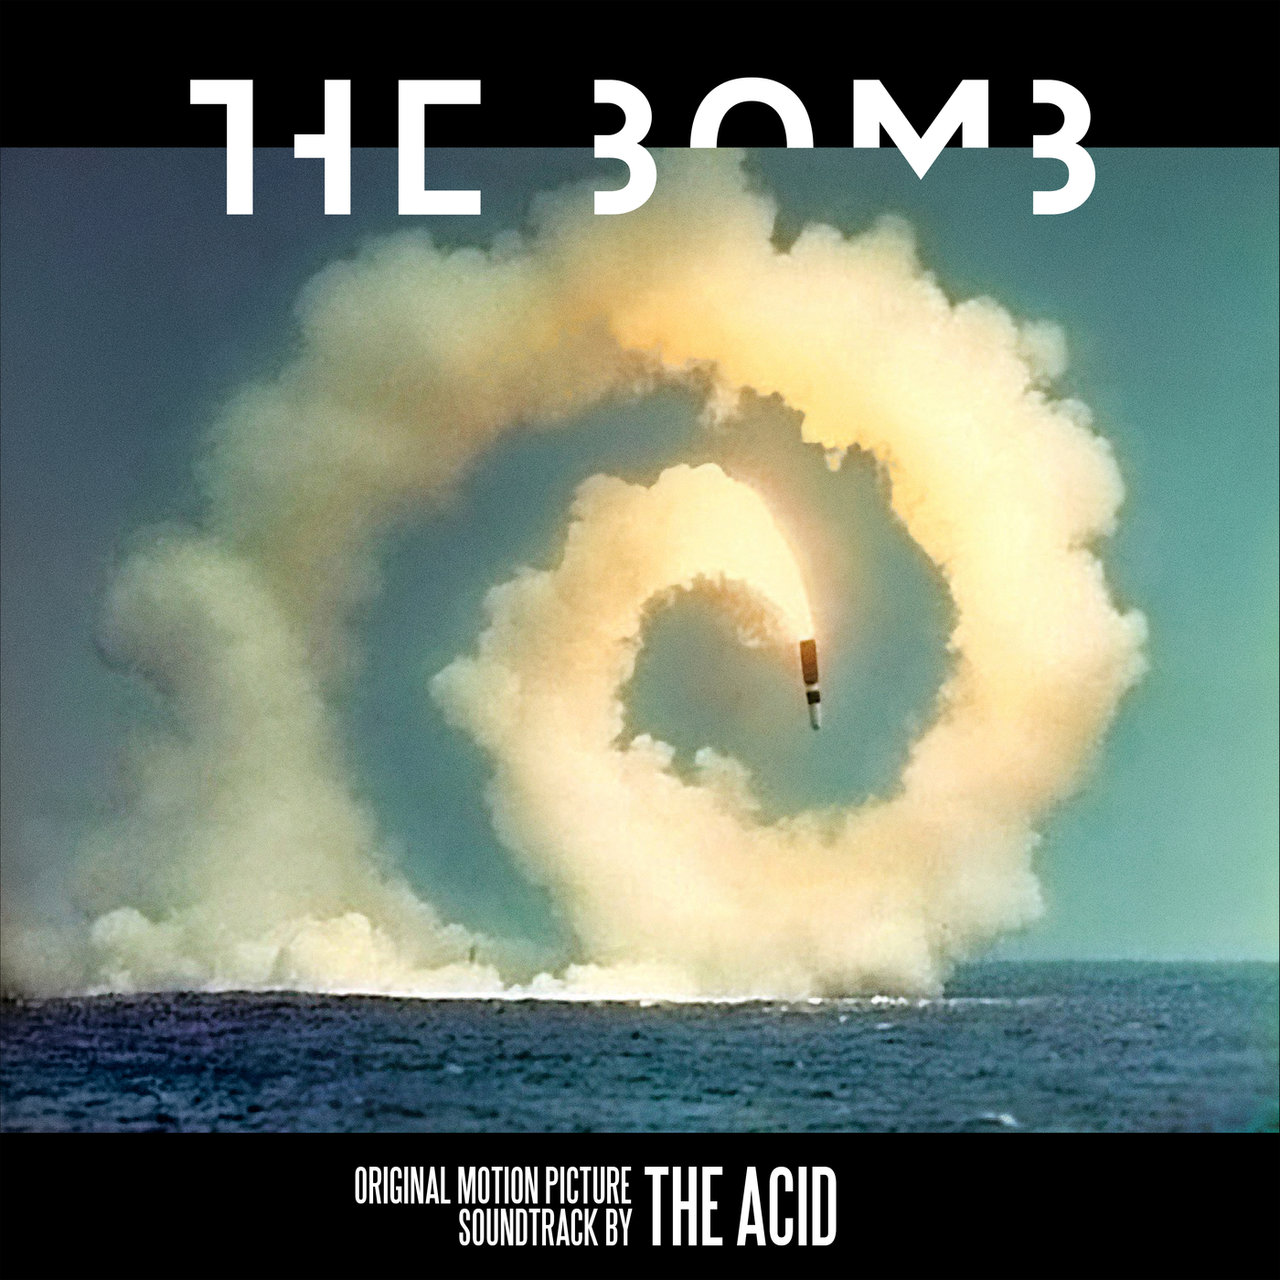 the bomb (Original Motion Picture Soundtrack)